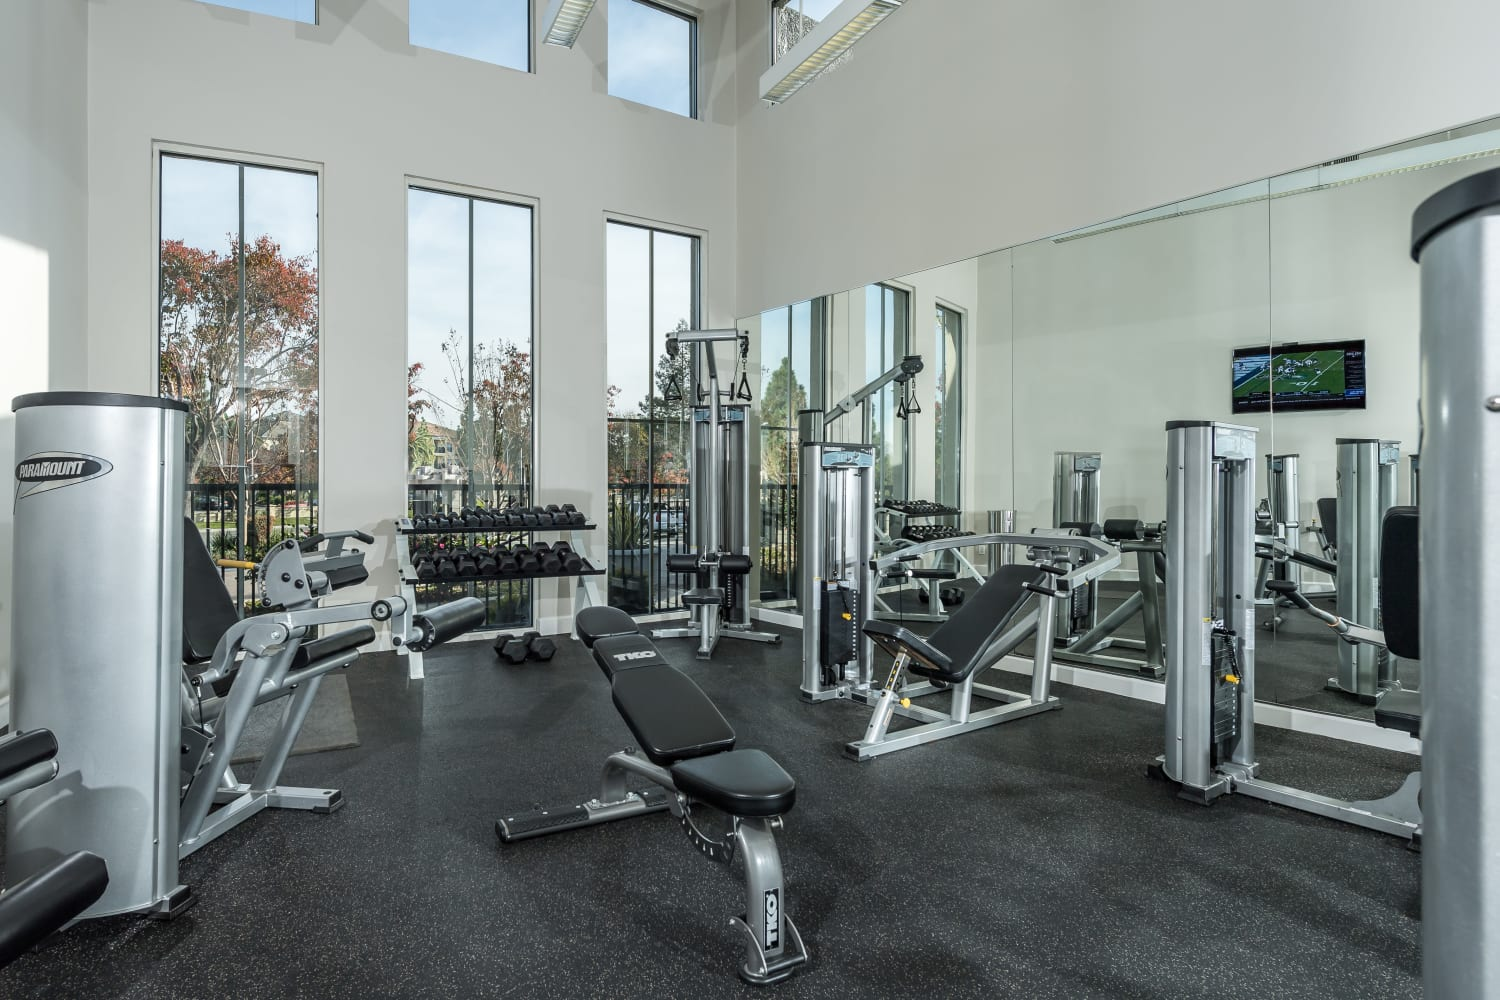 Fitness center at Bella Vista Apartments in Santa Clara, California